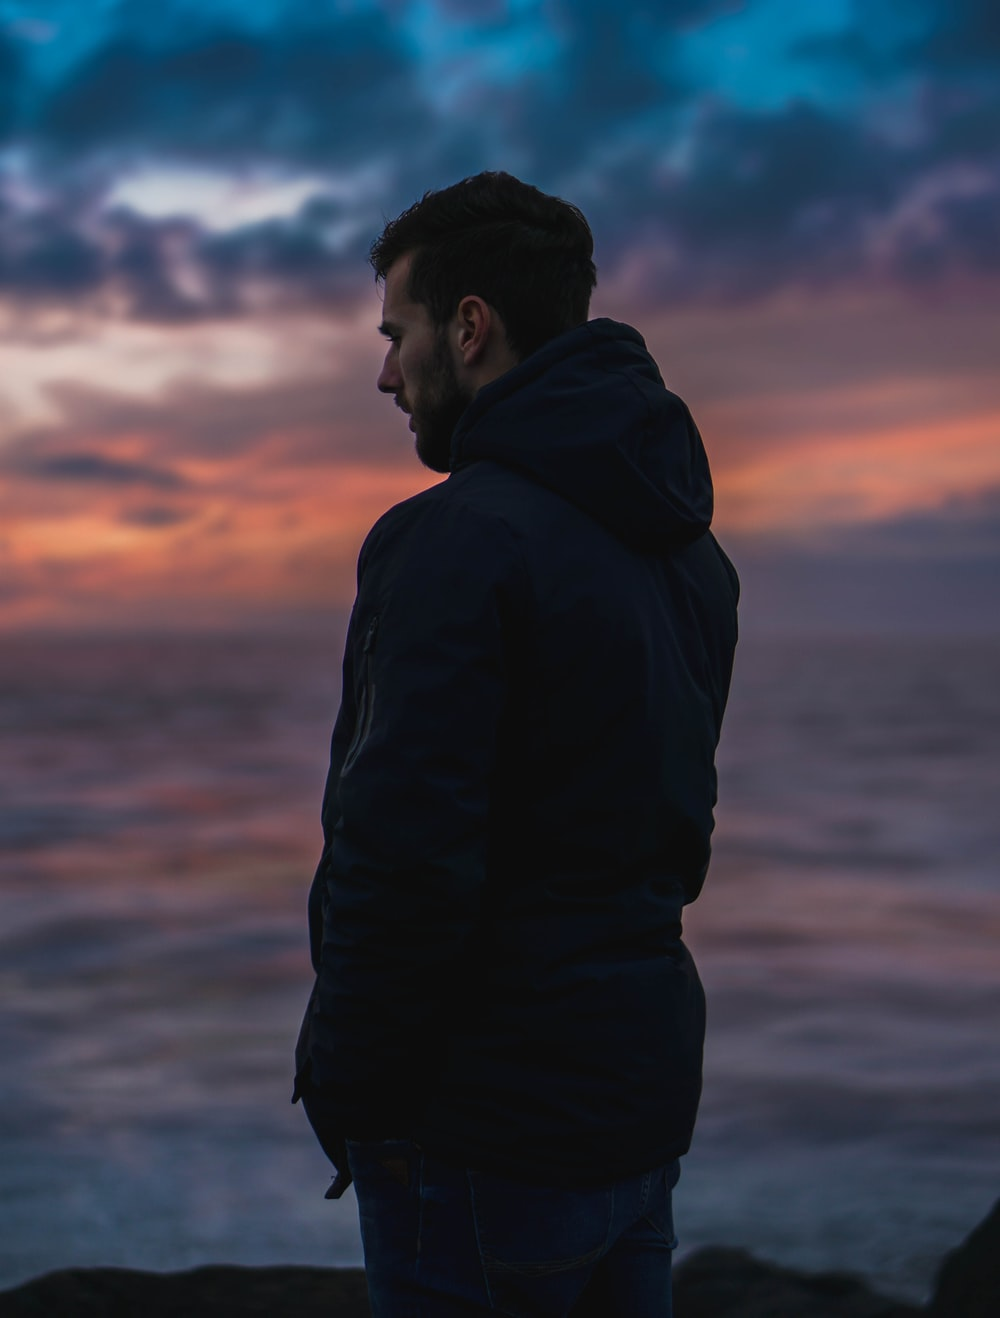 man wearing black jacket standing while facing his right side under blue and orange sky